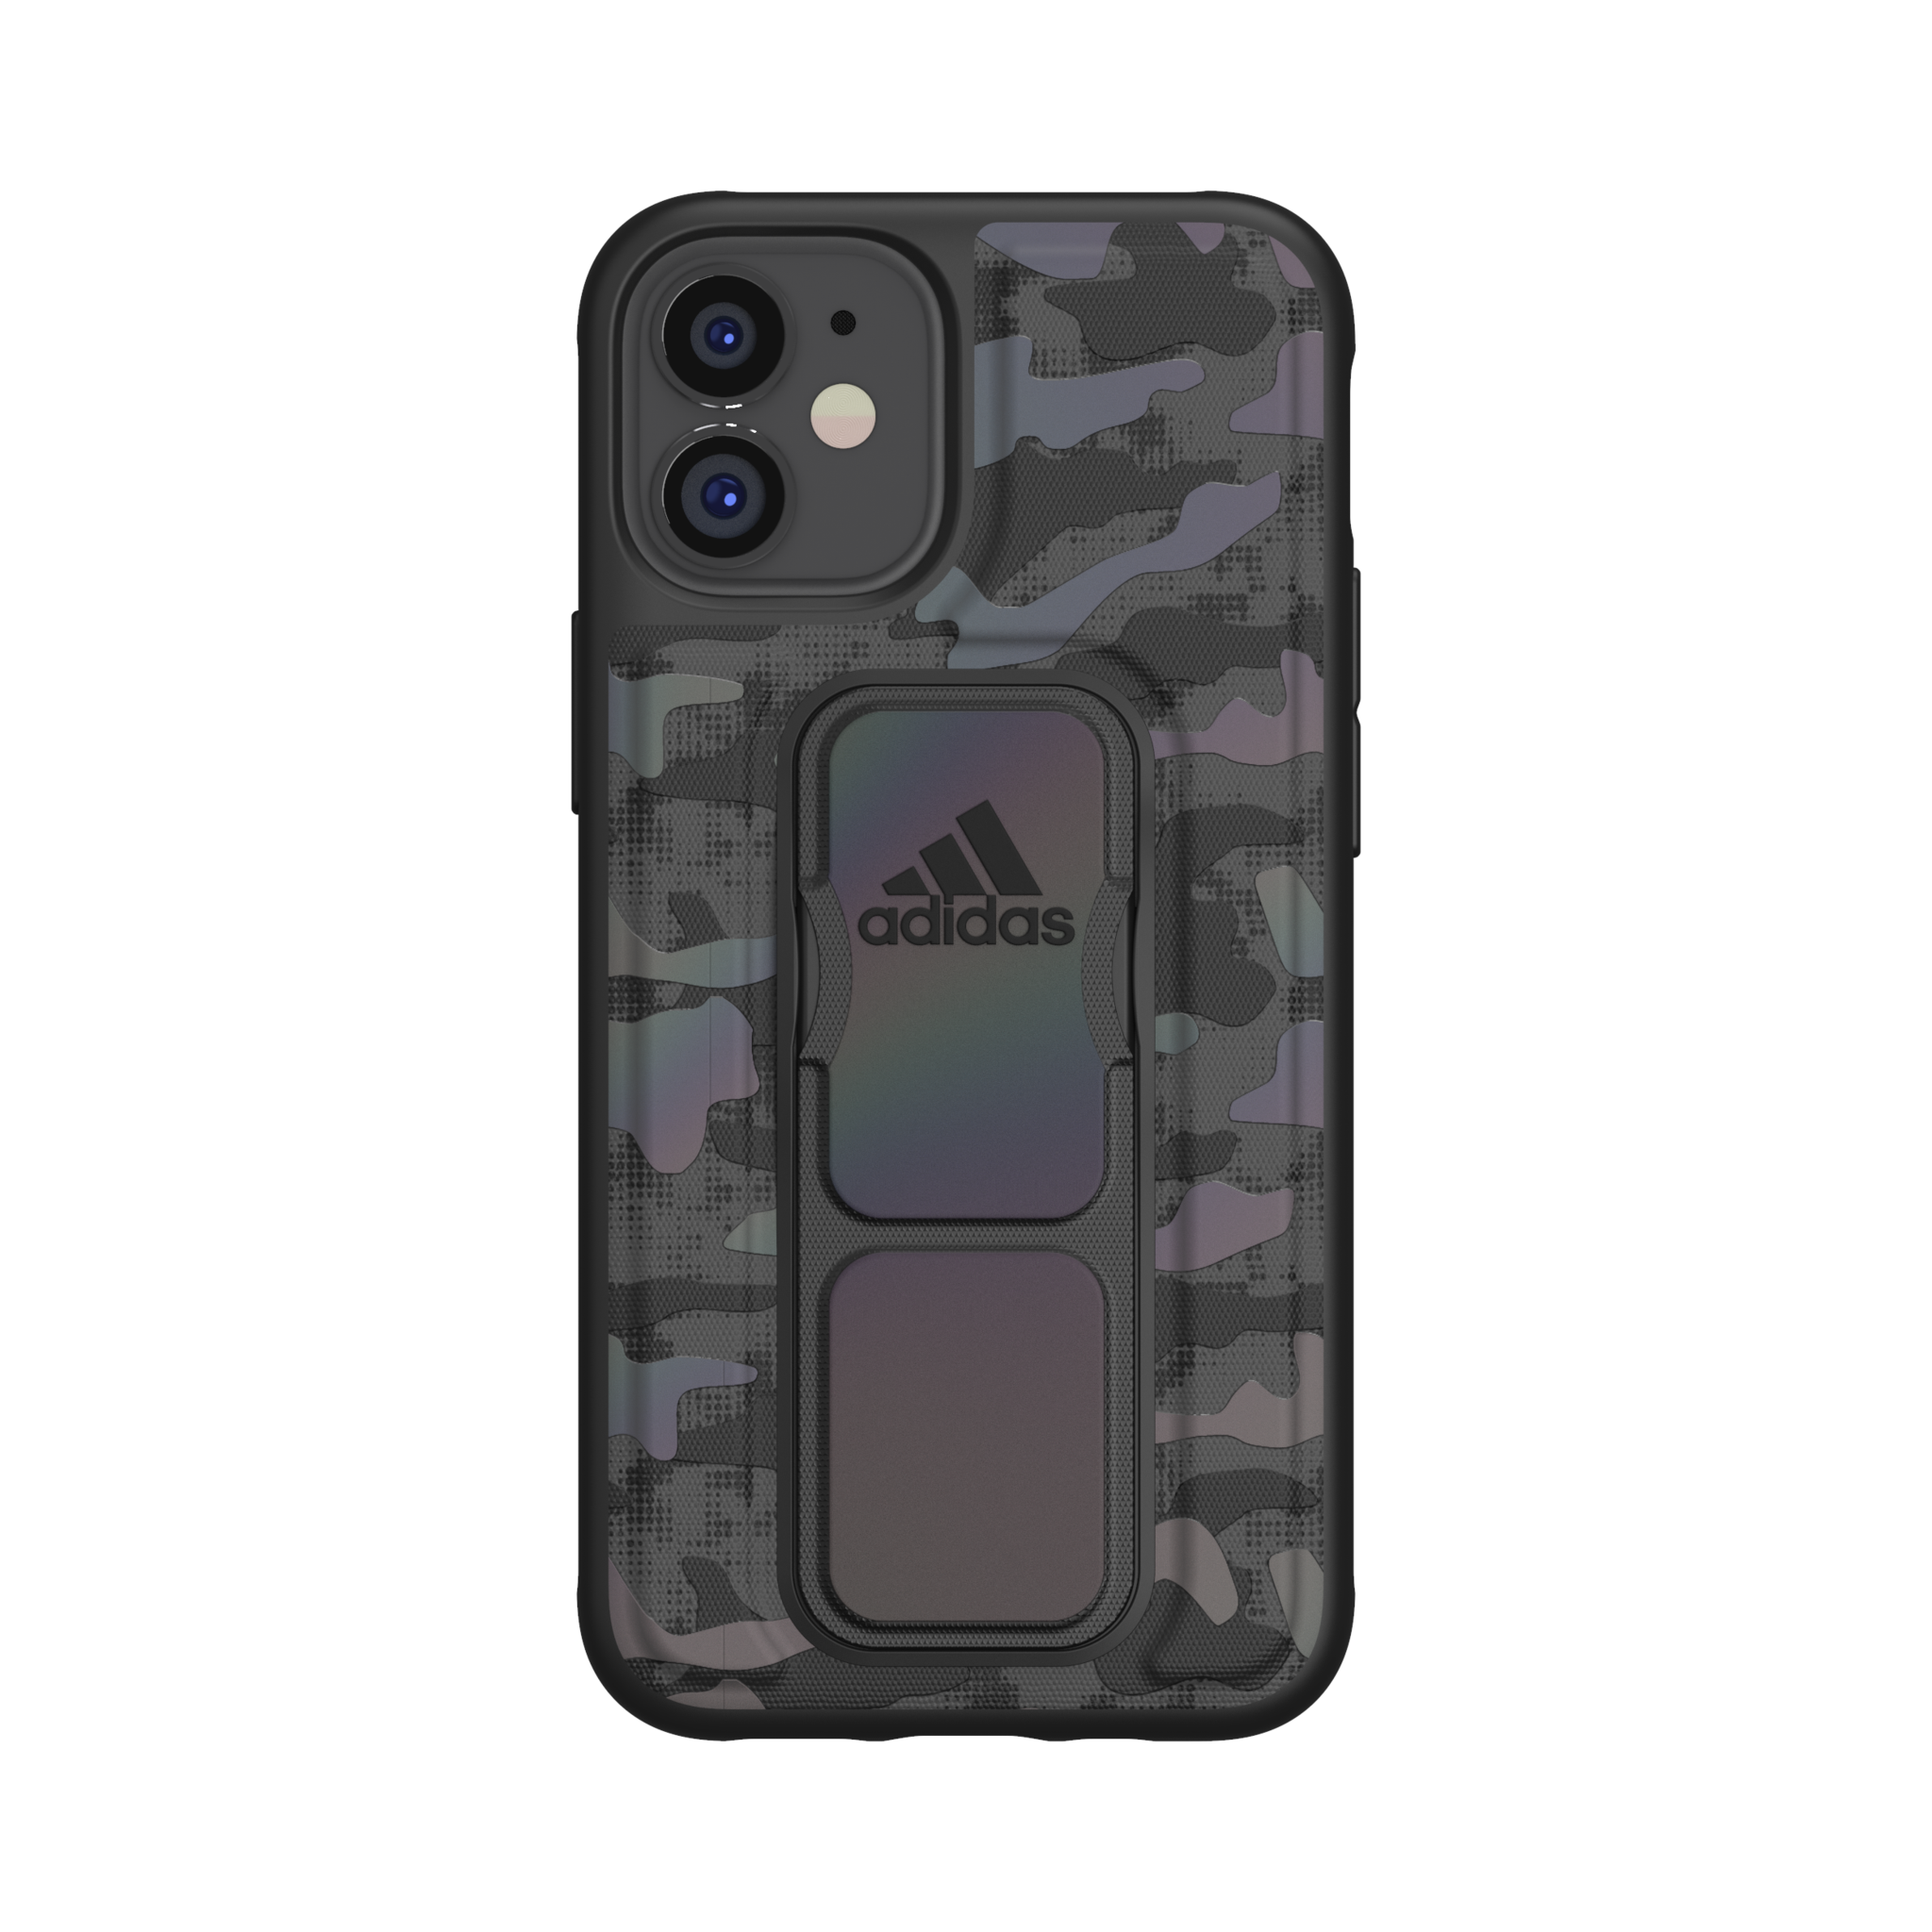 ADIDAS iPhone ( 2020 )  - SPORT GRIP CASE CAMO - Black